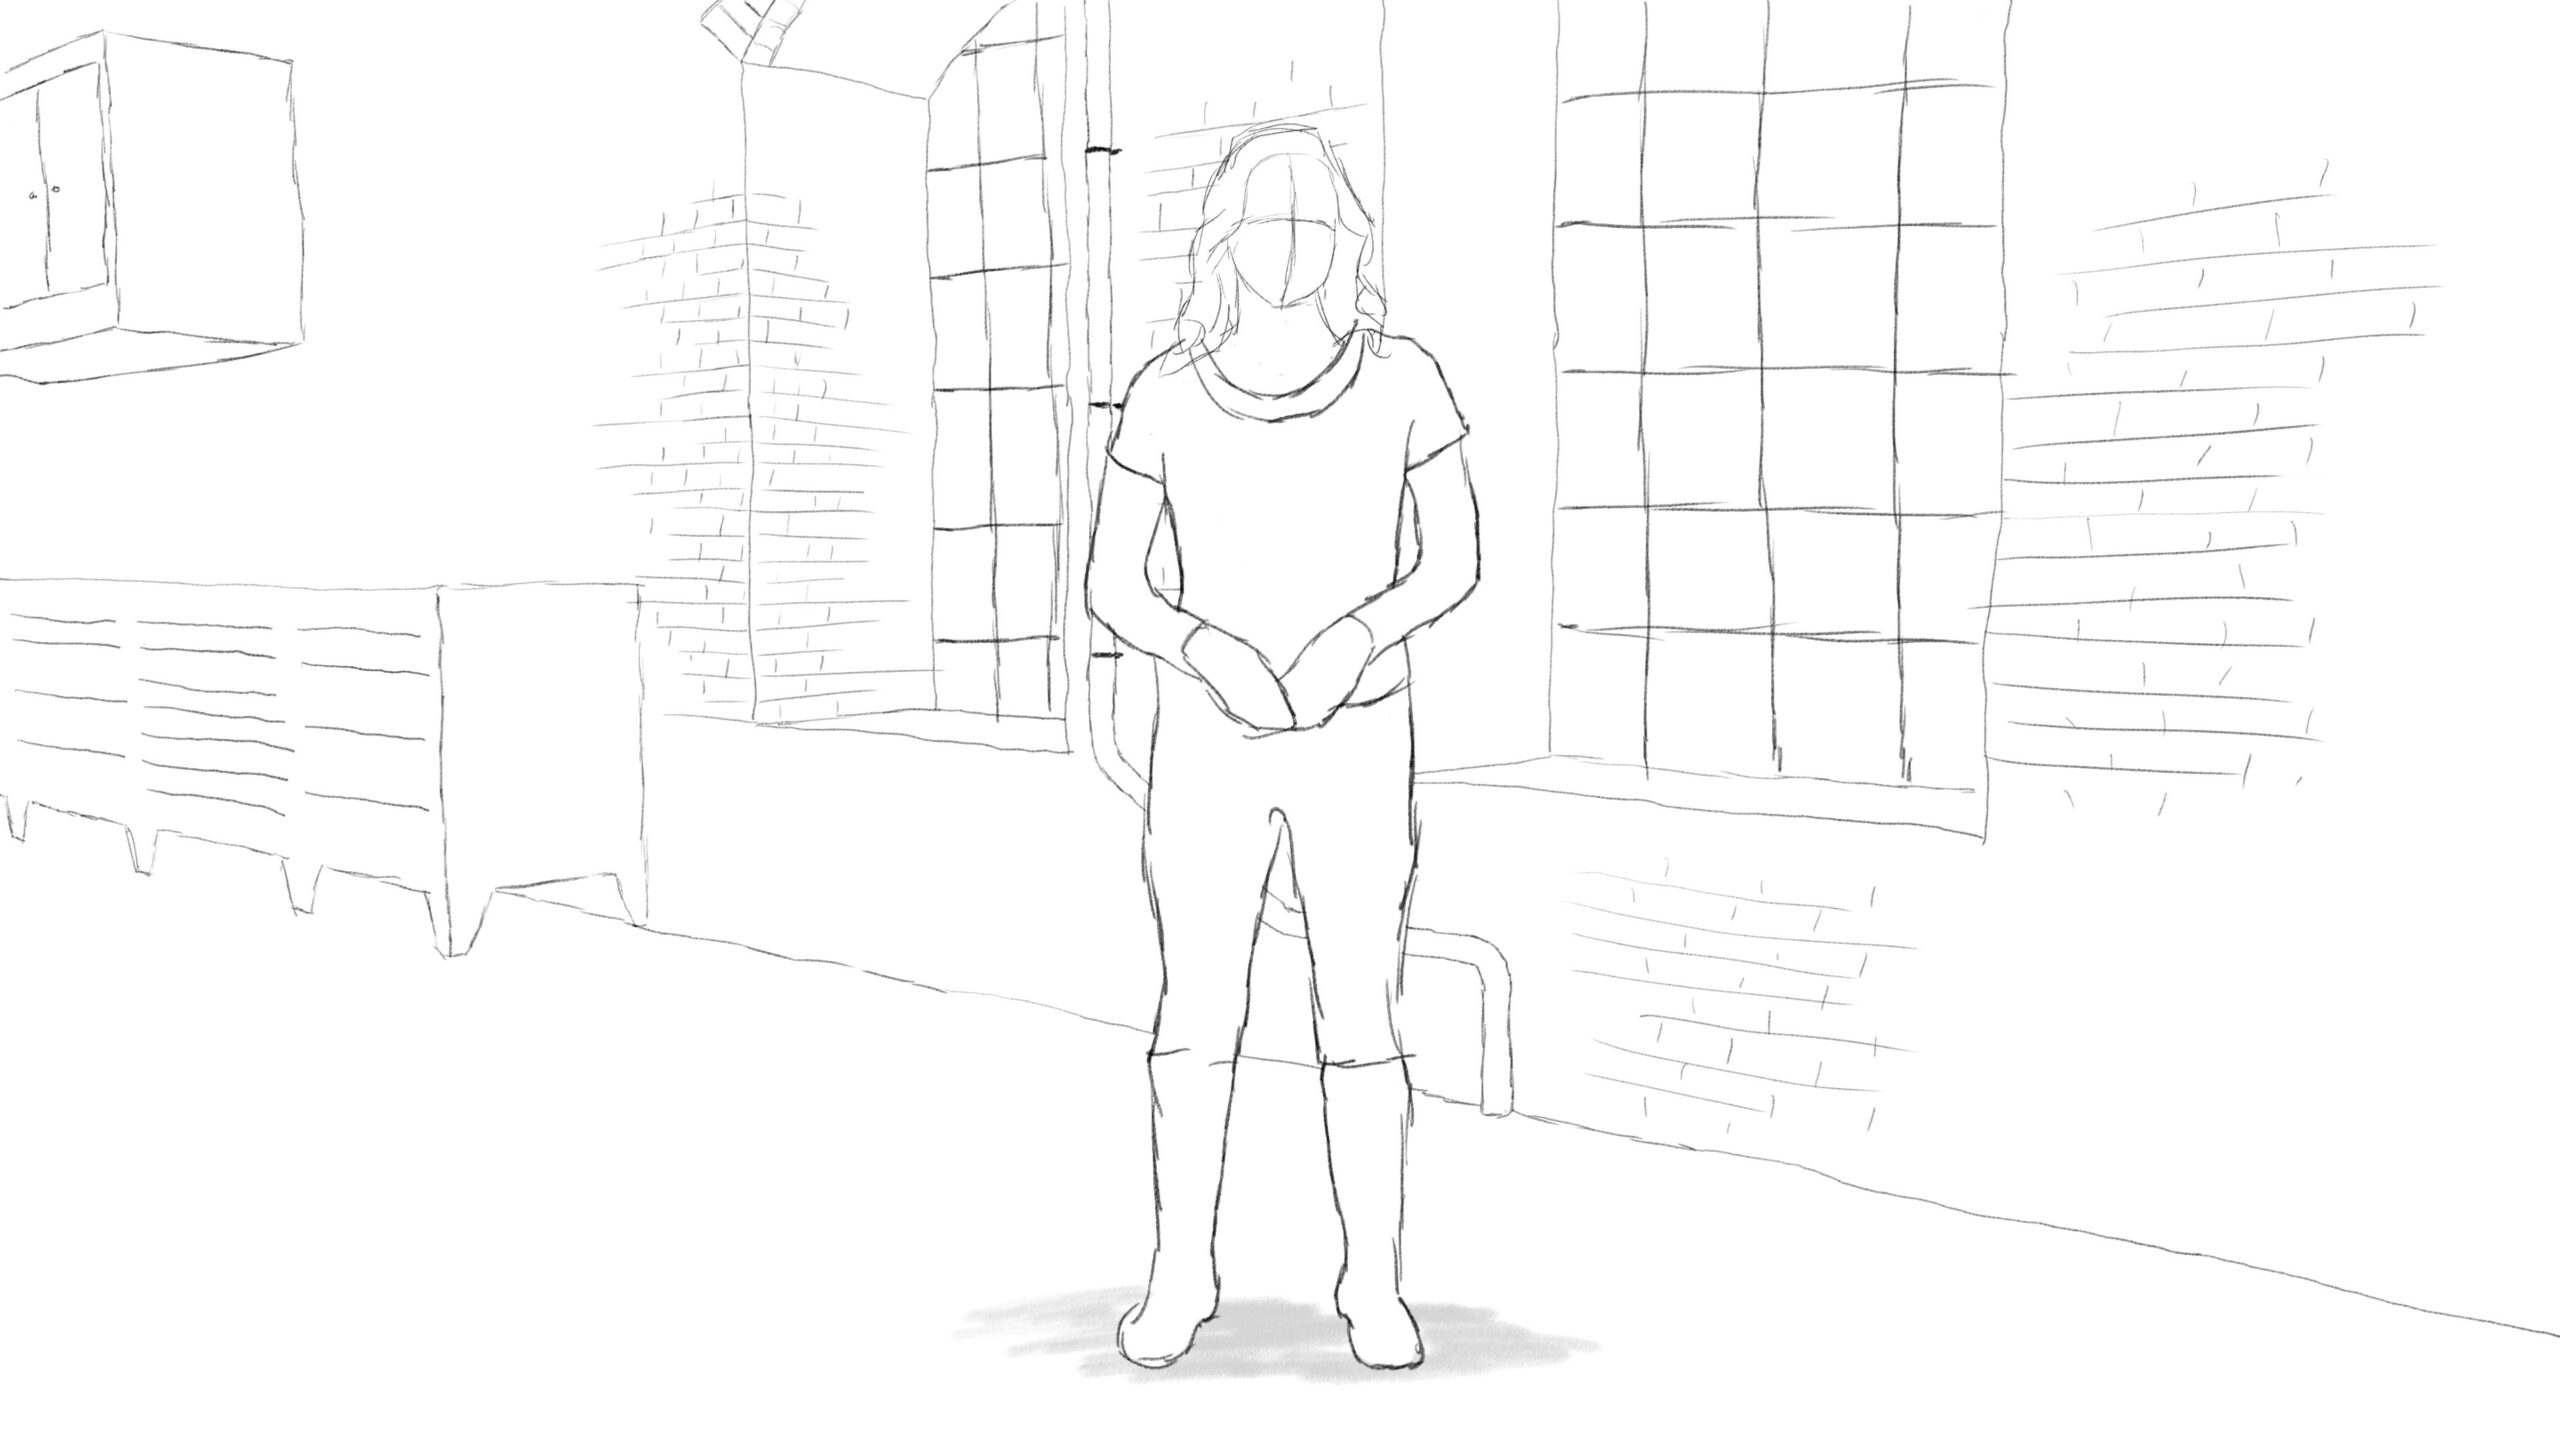 Pitney Bowes-RumbleOn concept art - wide-view drawing of a person standing in front of a garage window